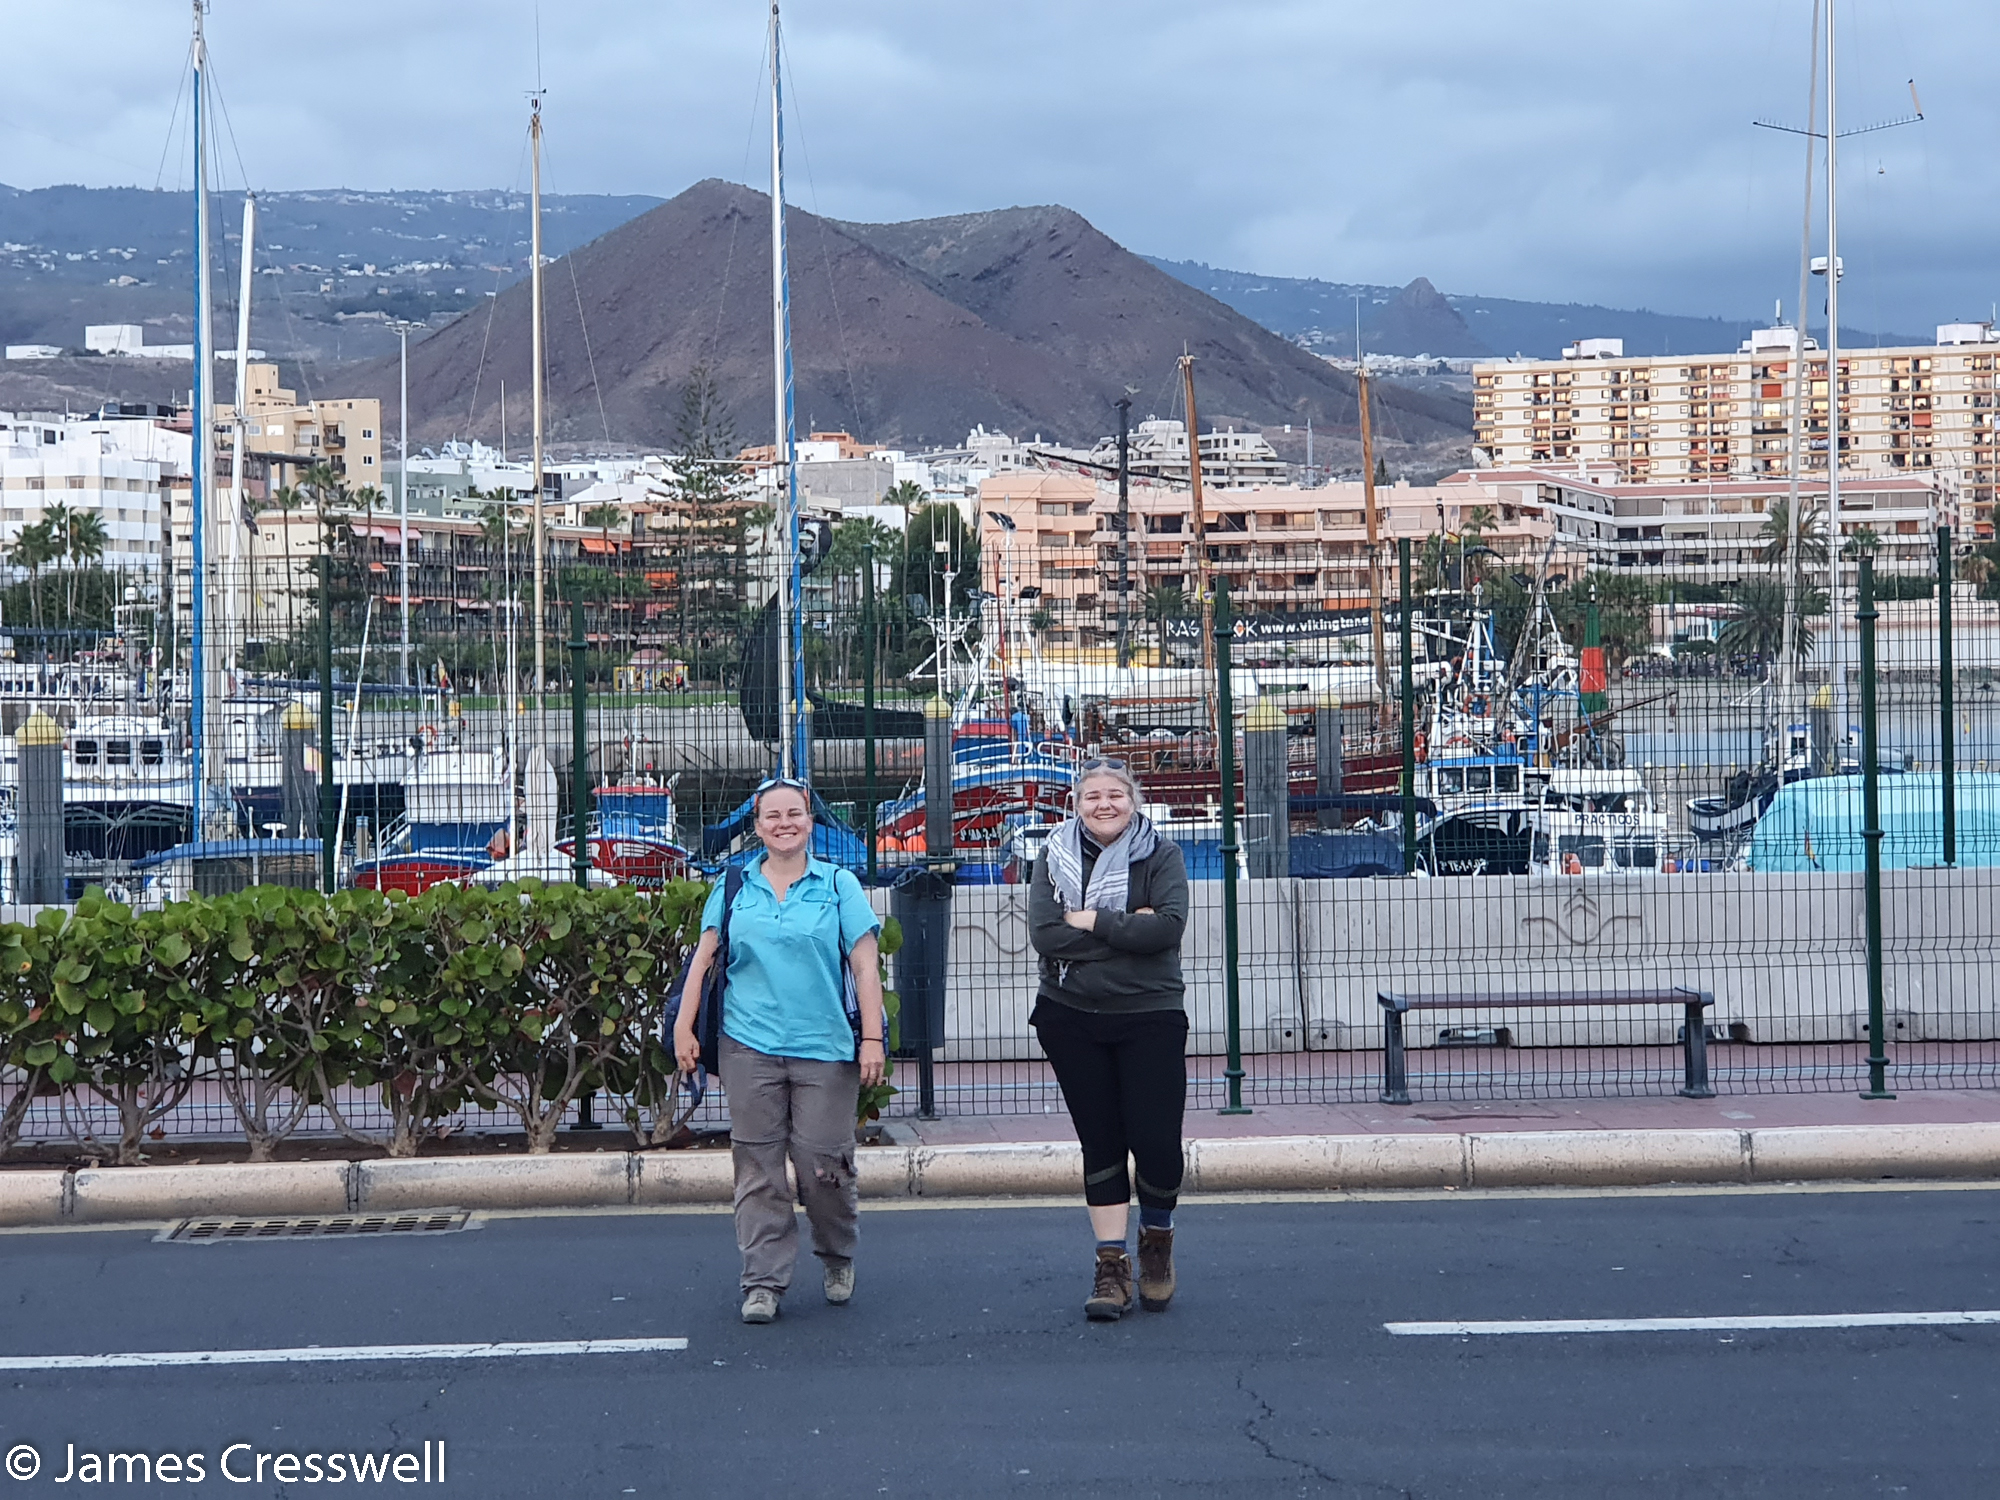 Two women crossing a road near a port with volanic feature behind